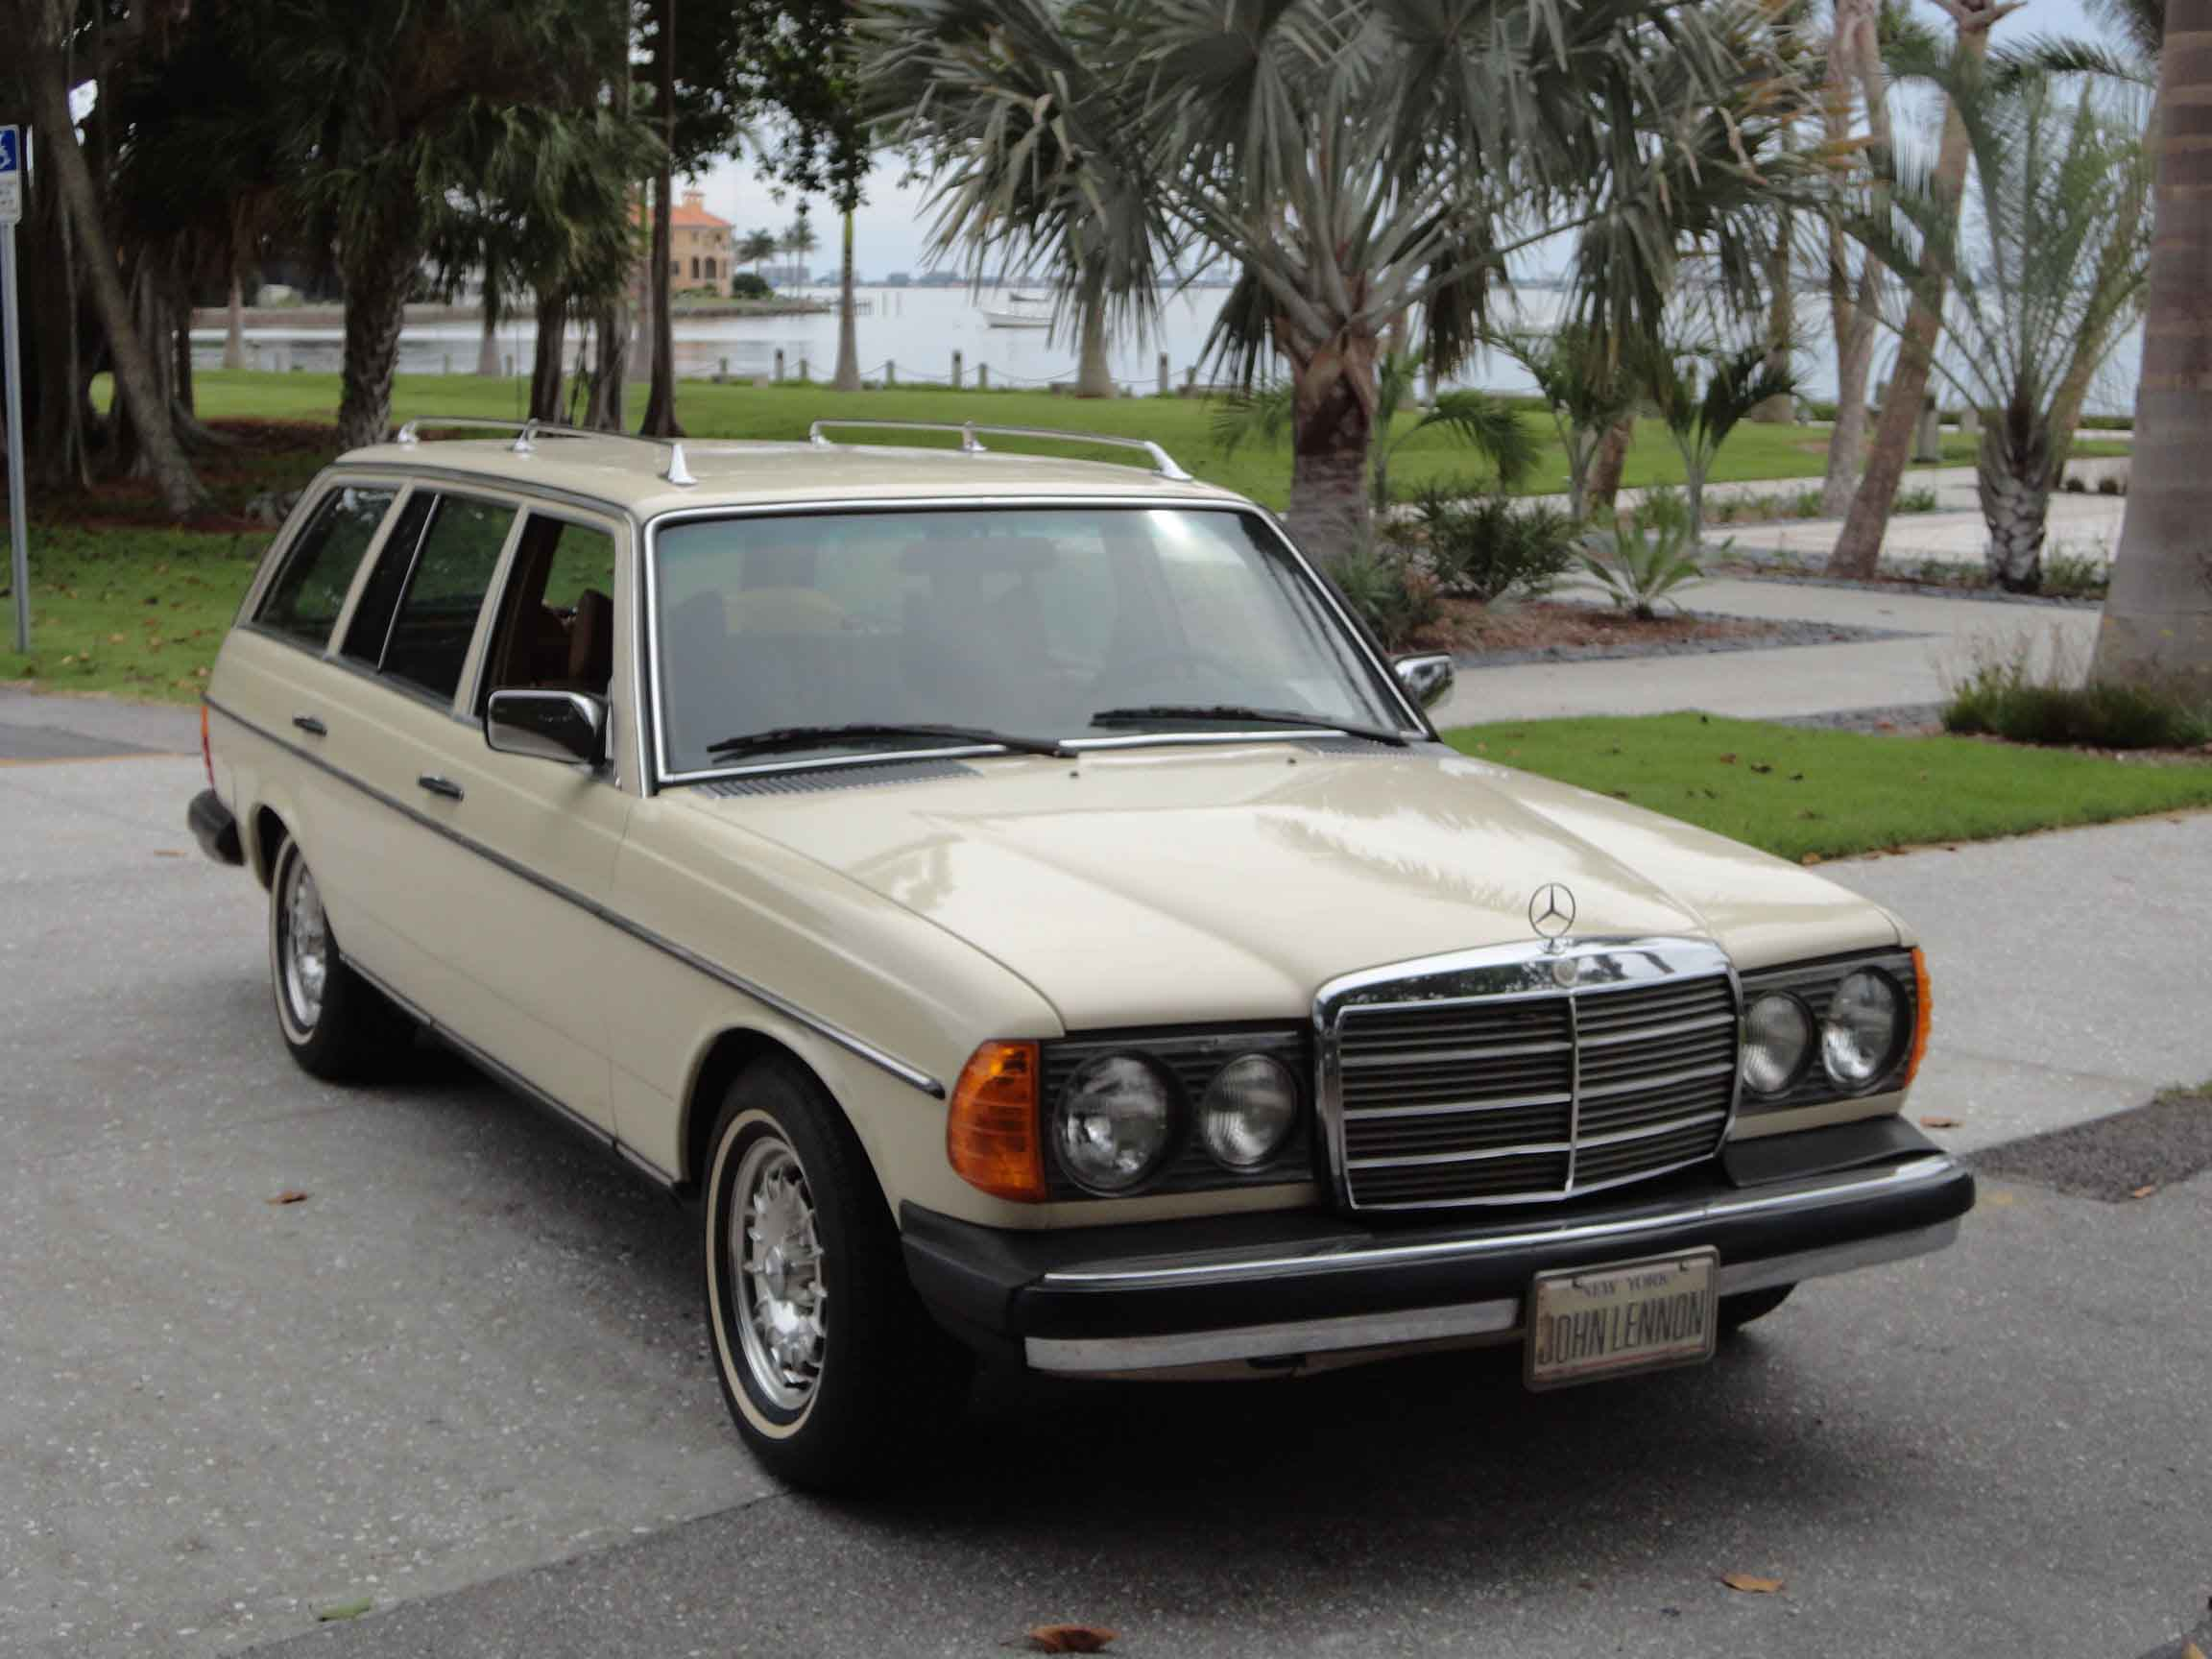 1980 mercedes benz 300td information and photos momentcar for Mercedes benz 300 td